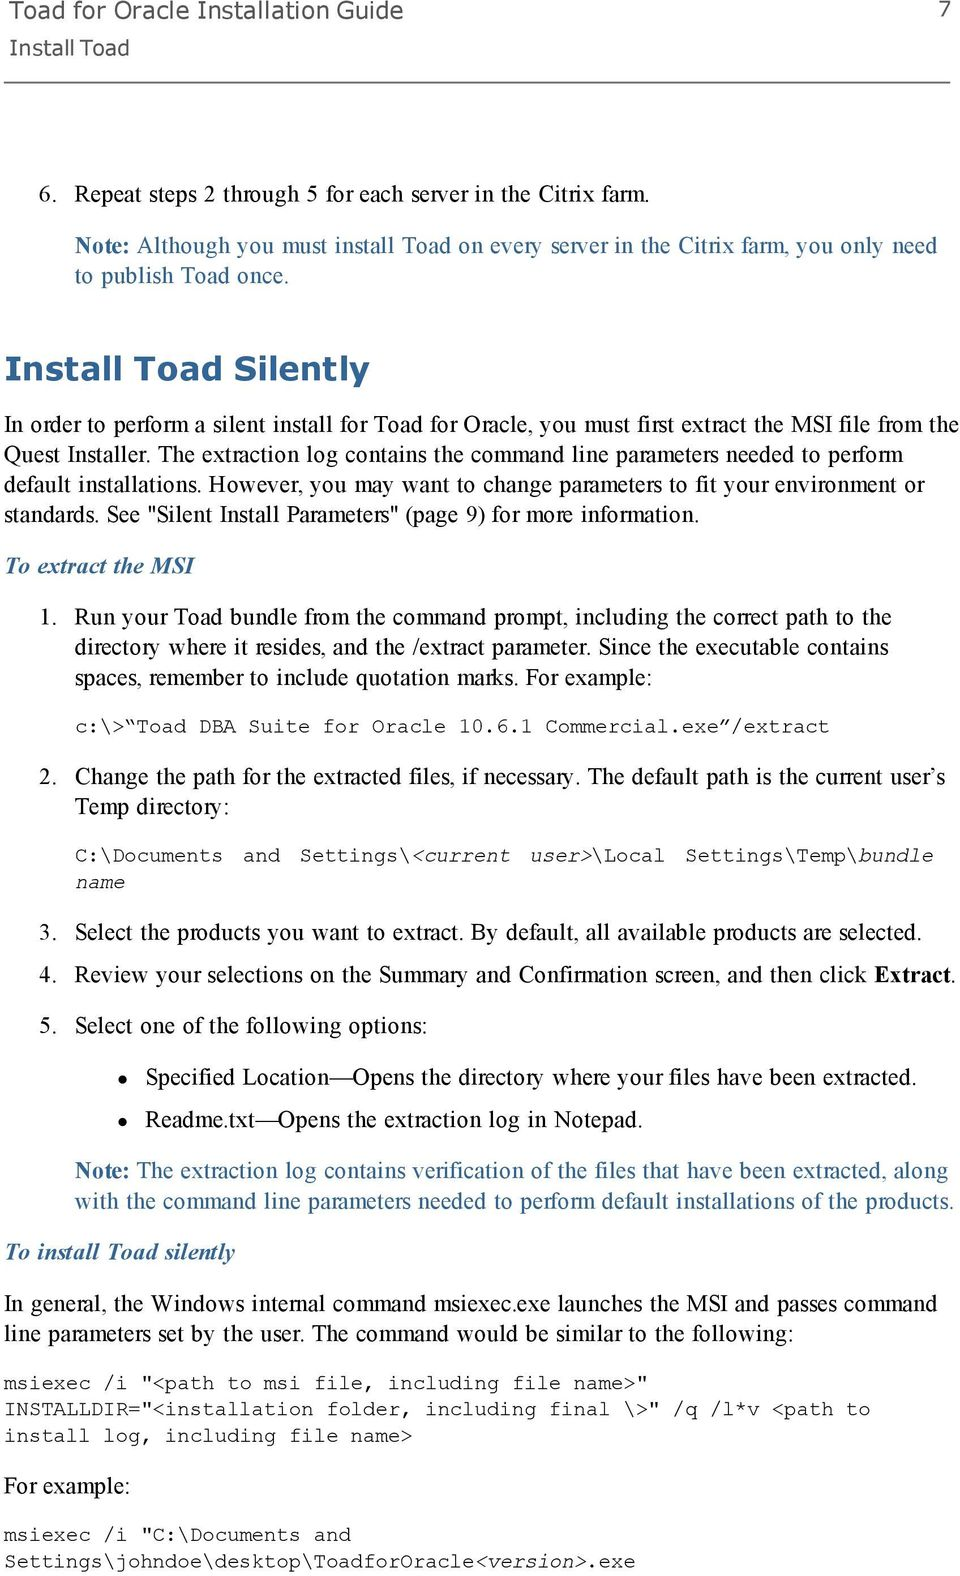 Toad for Oracle Installation Guide - PDF